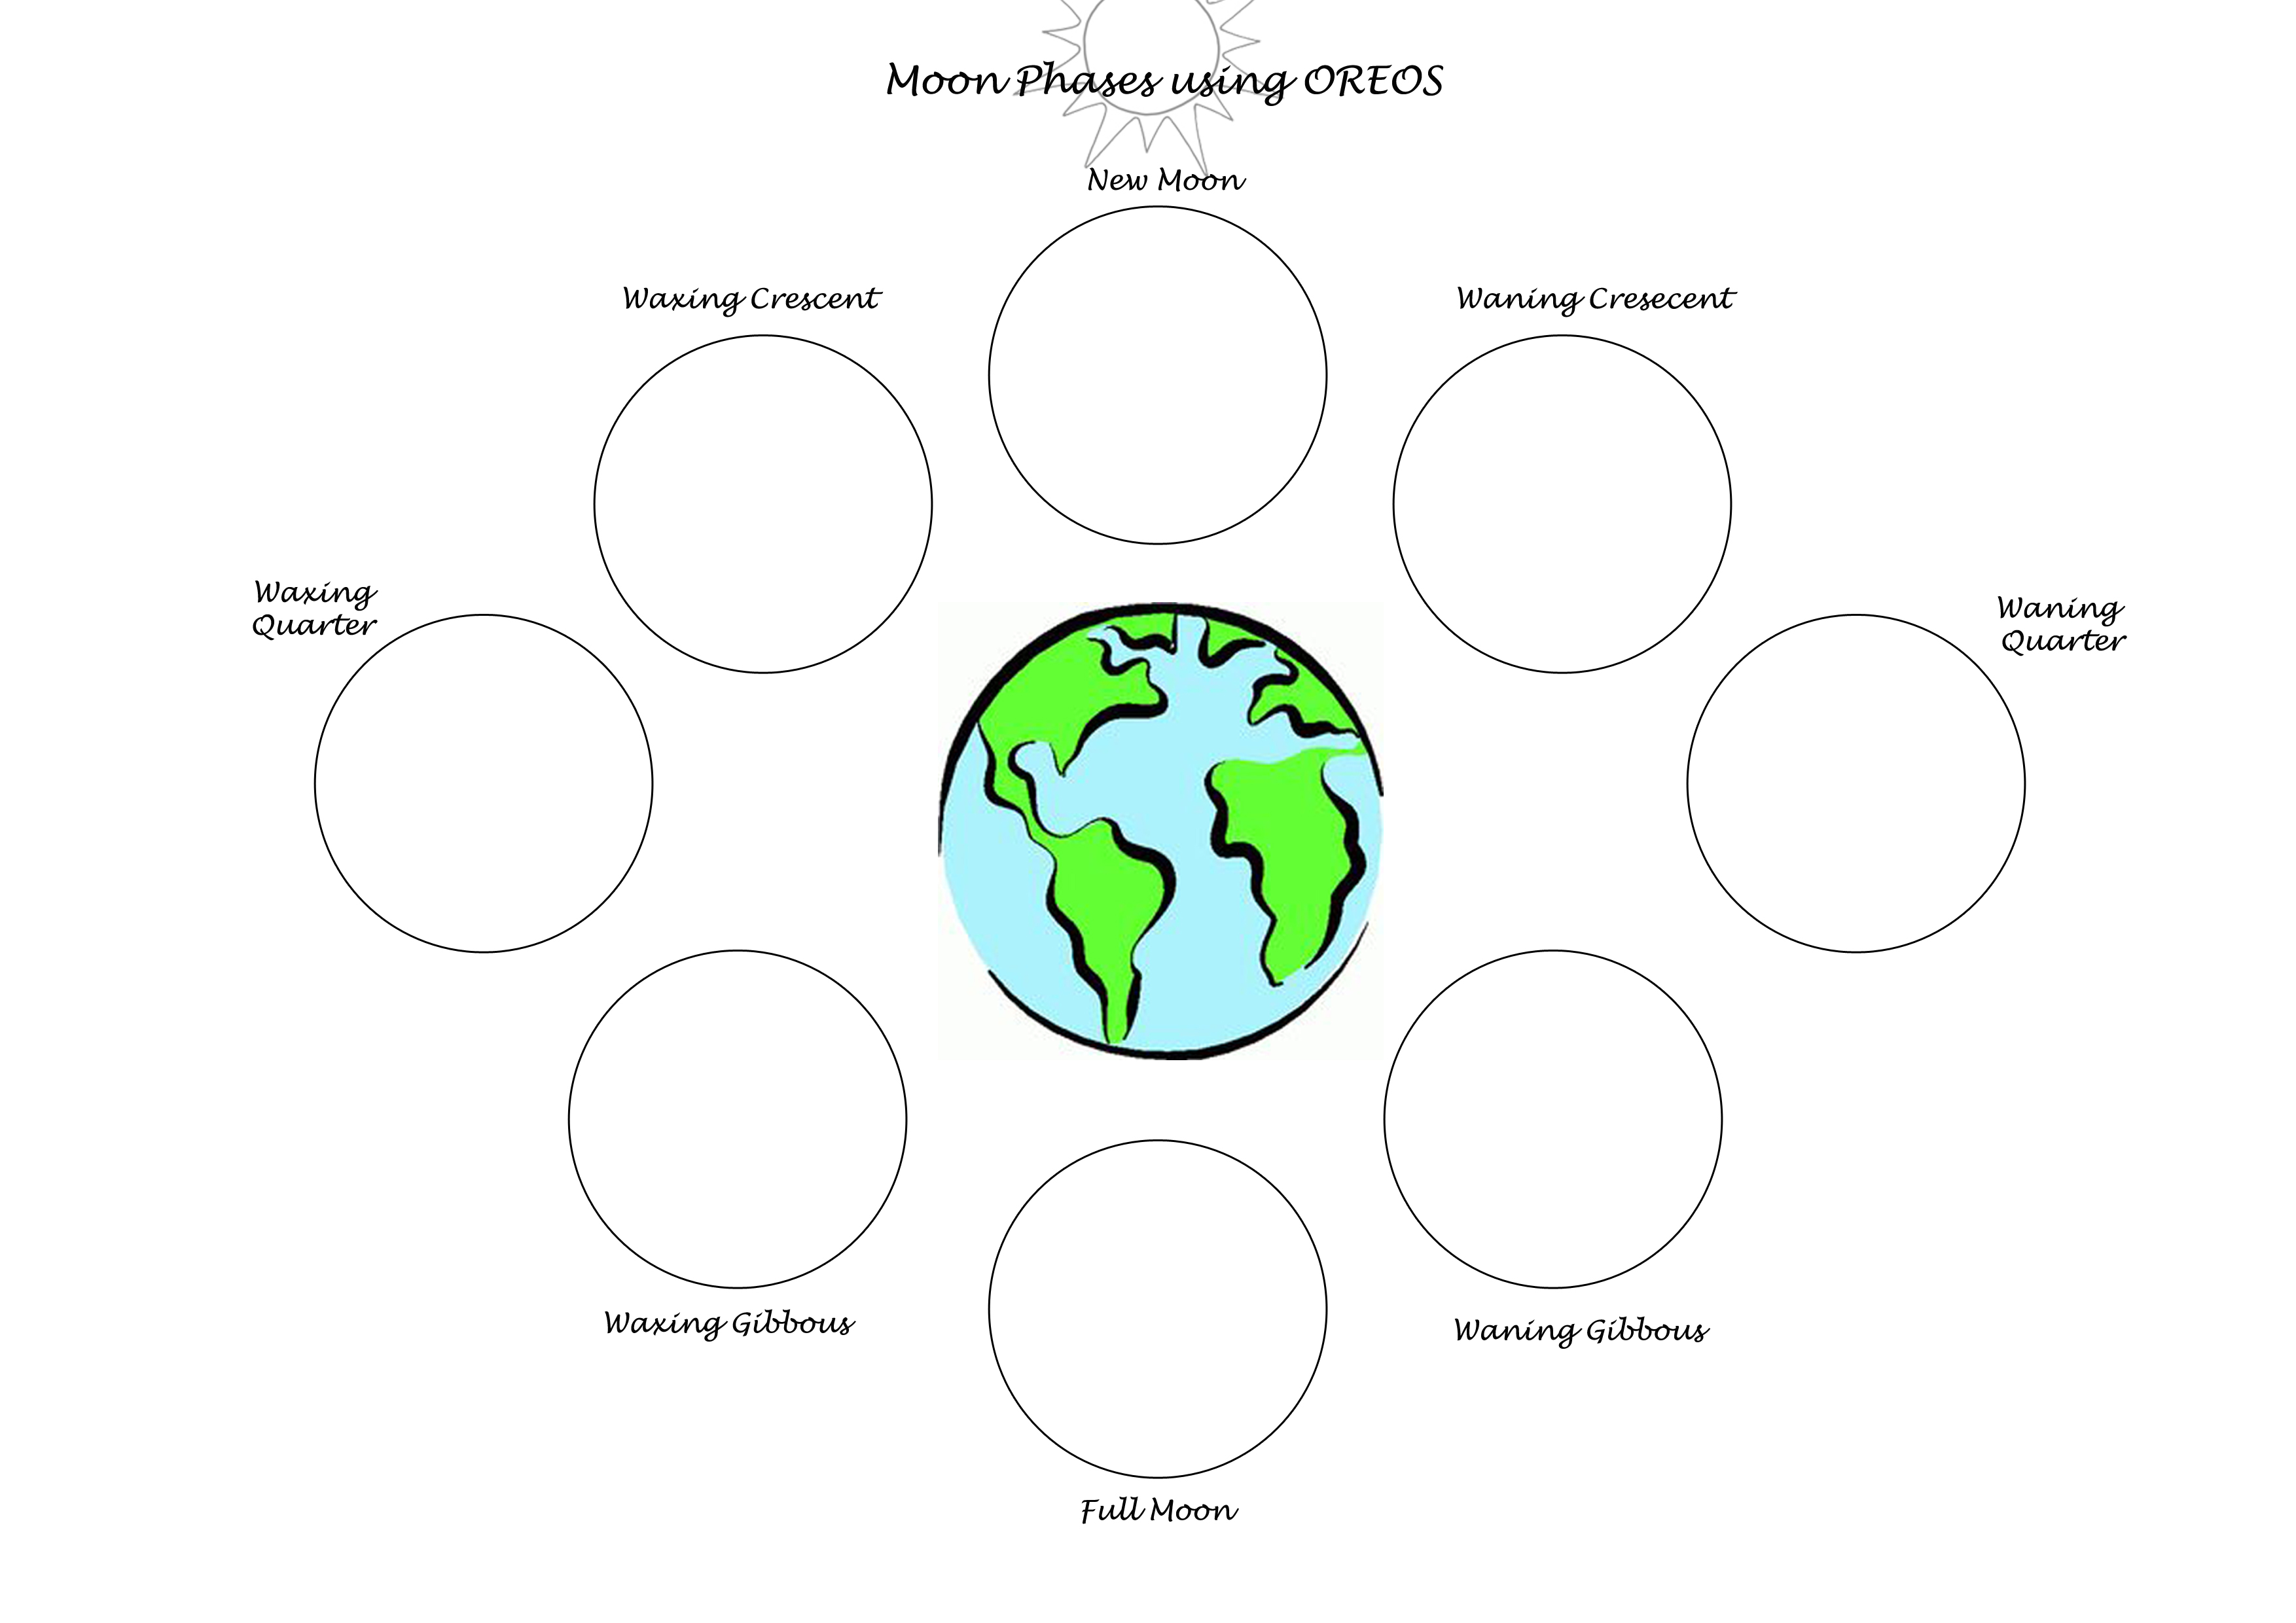 Free Worksheets Library Download And Print On Lunar Phases Diagram Ks3 Activate Science 1 Space Lesson 4 The Moon By Shaker1